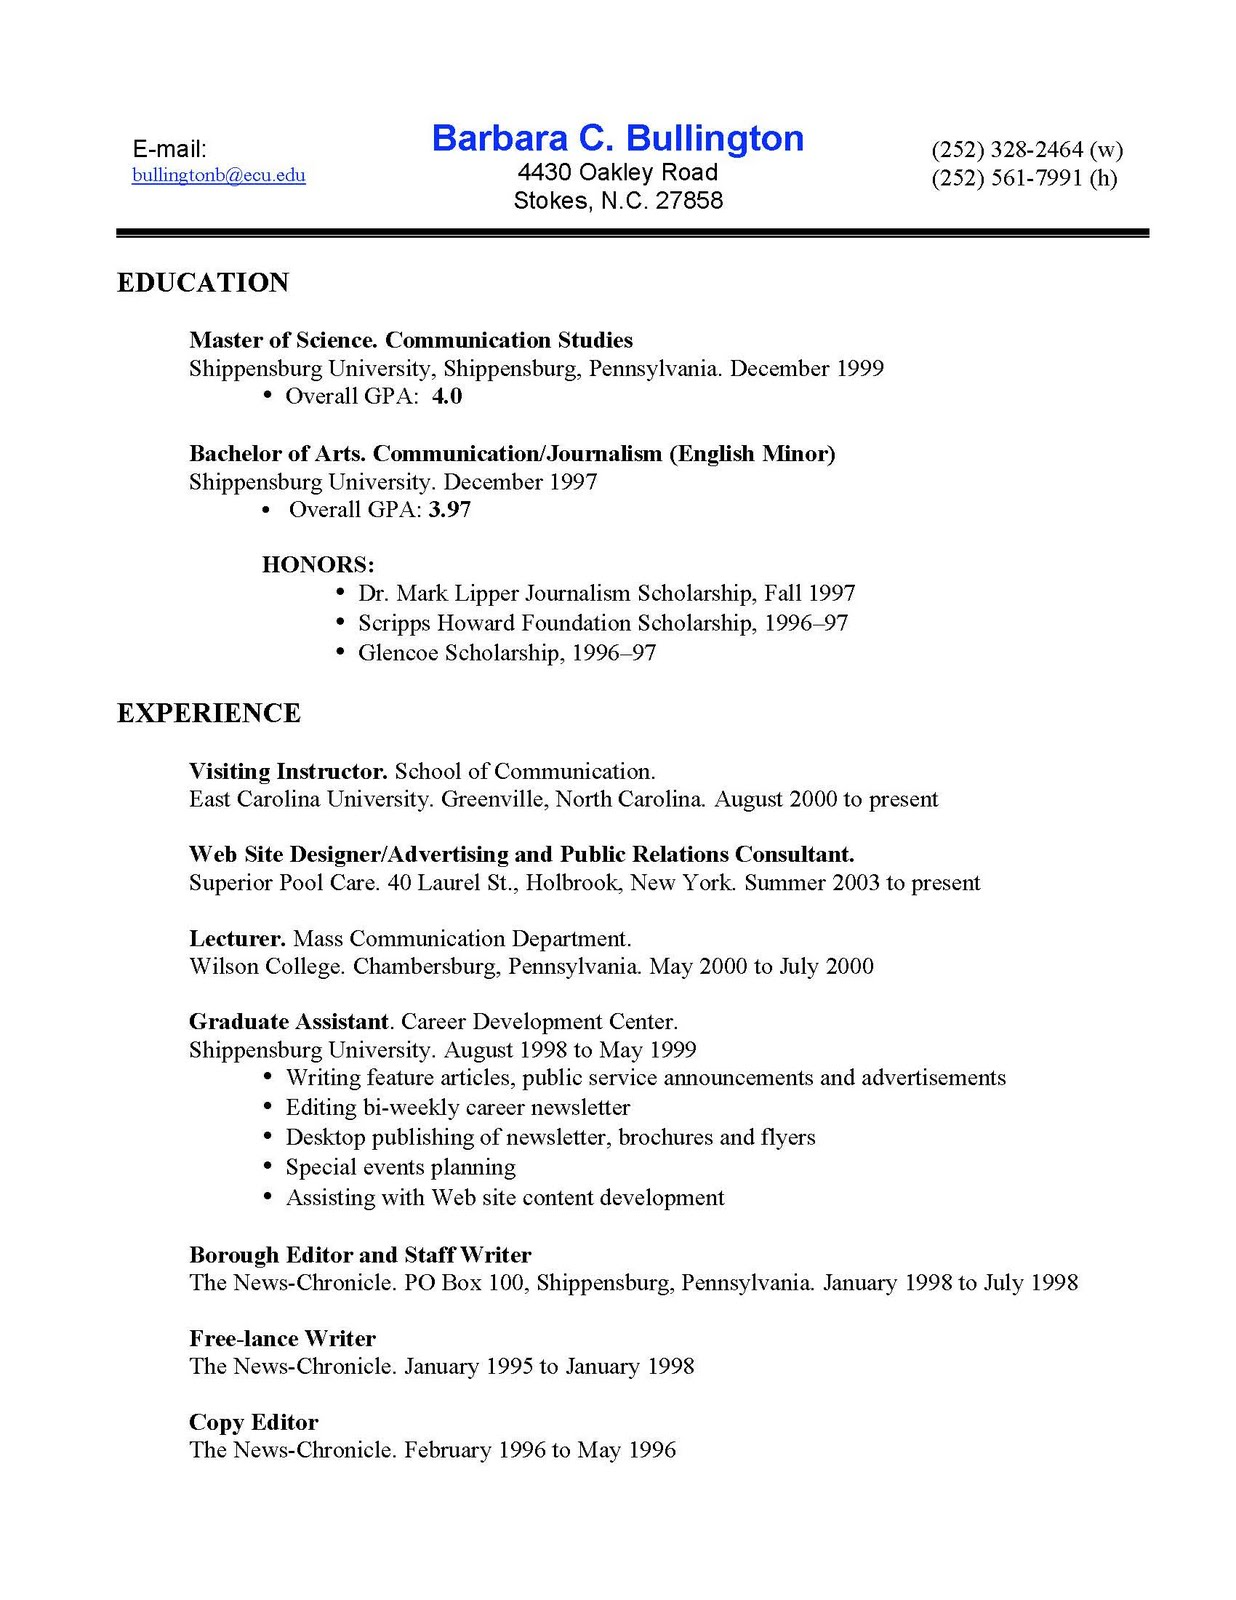 bullington designs  here u0026 39 s a copy of my most updated resume